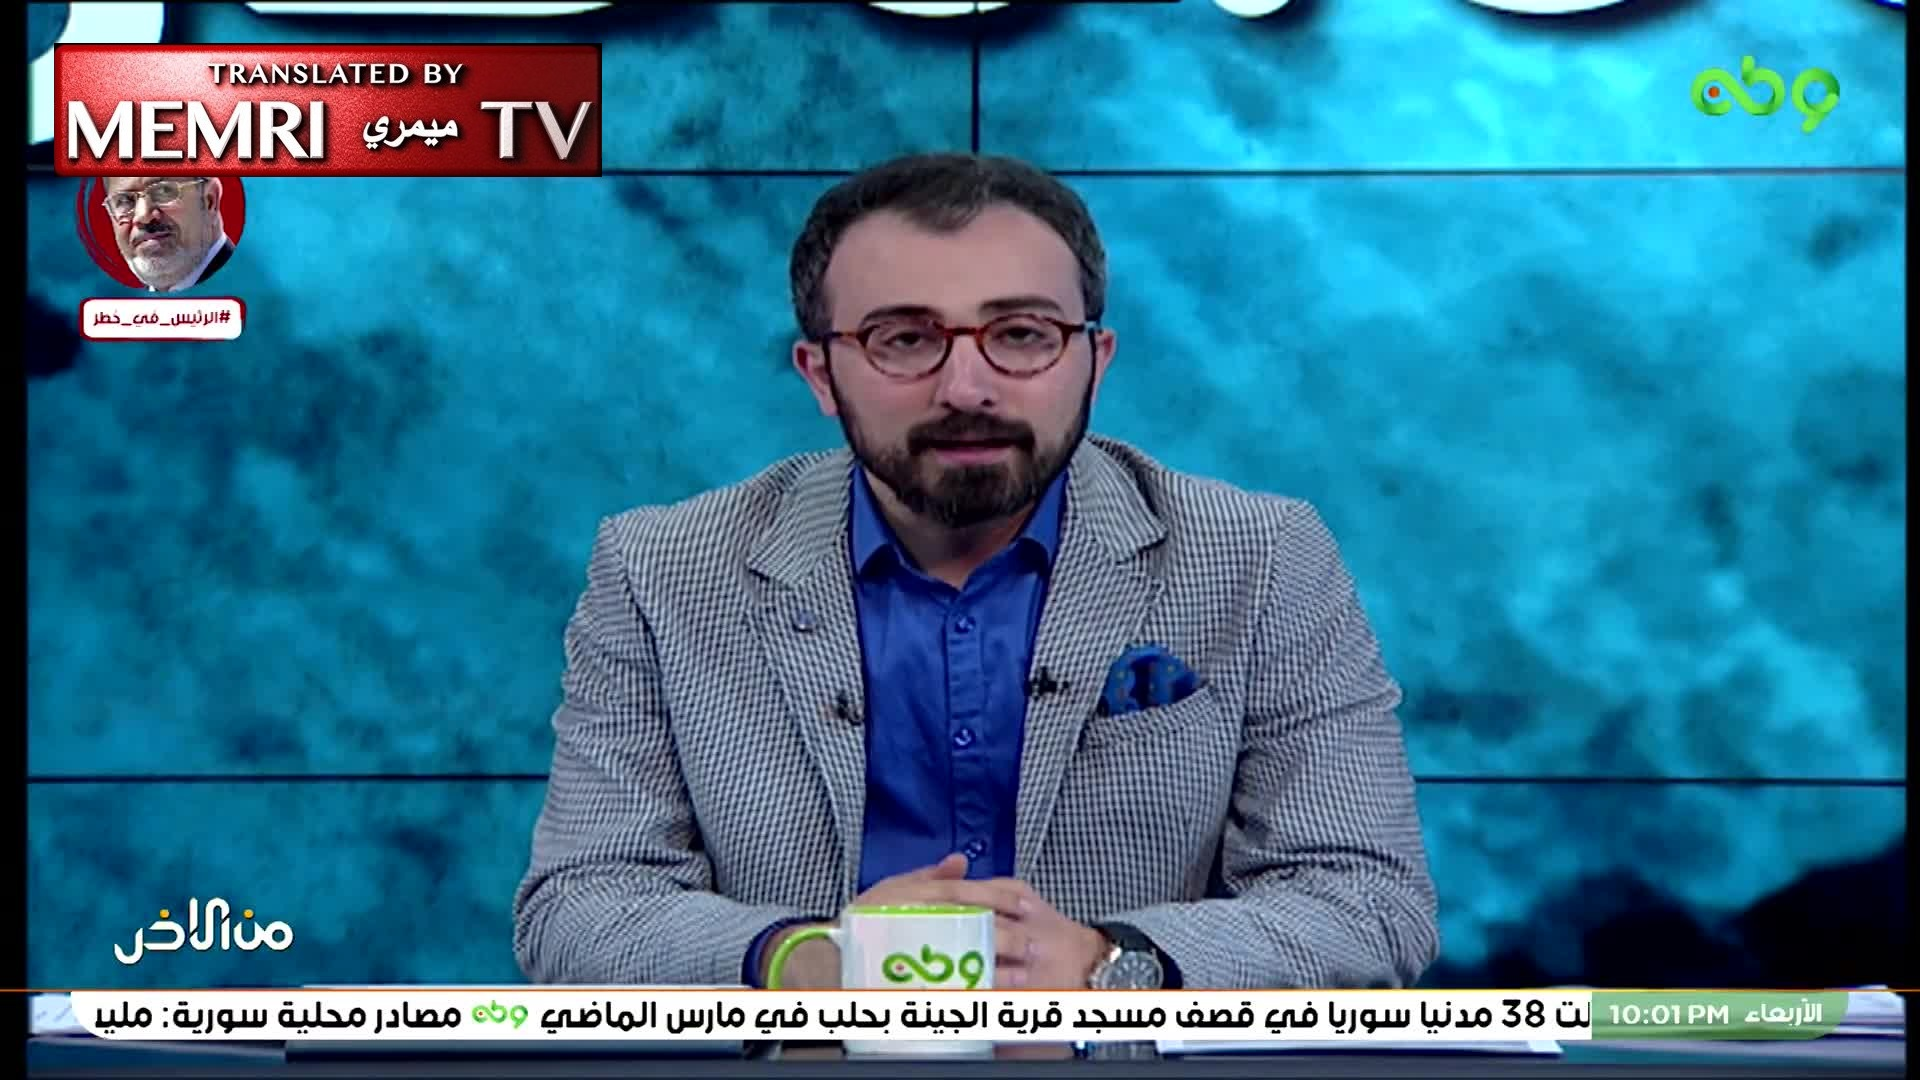 TV Host on Egyptian MB TV Channel: The Americans Wail on 9/11, But Are Responsible for All the Massacres in the Arab and Muslim World